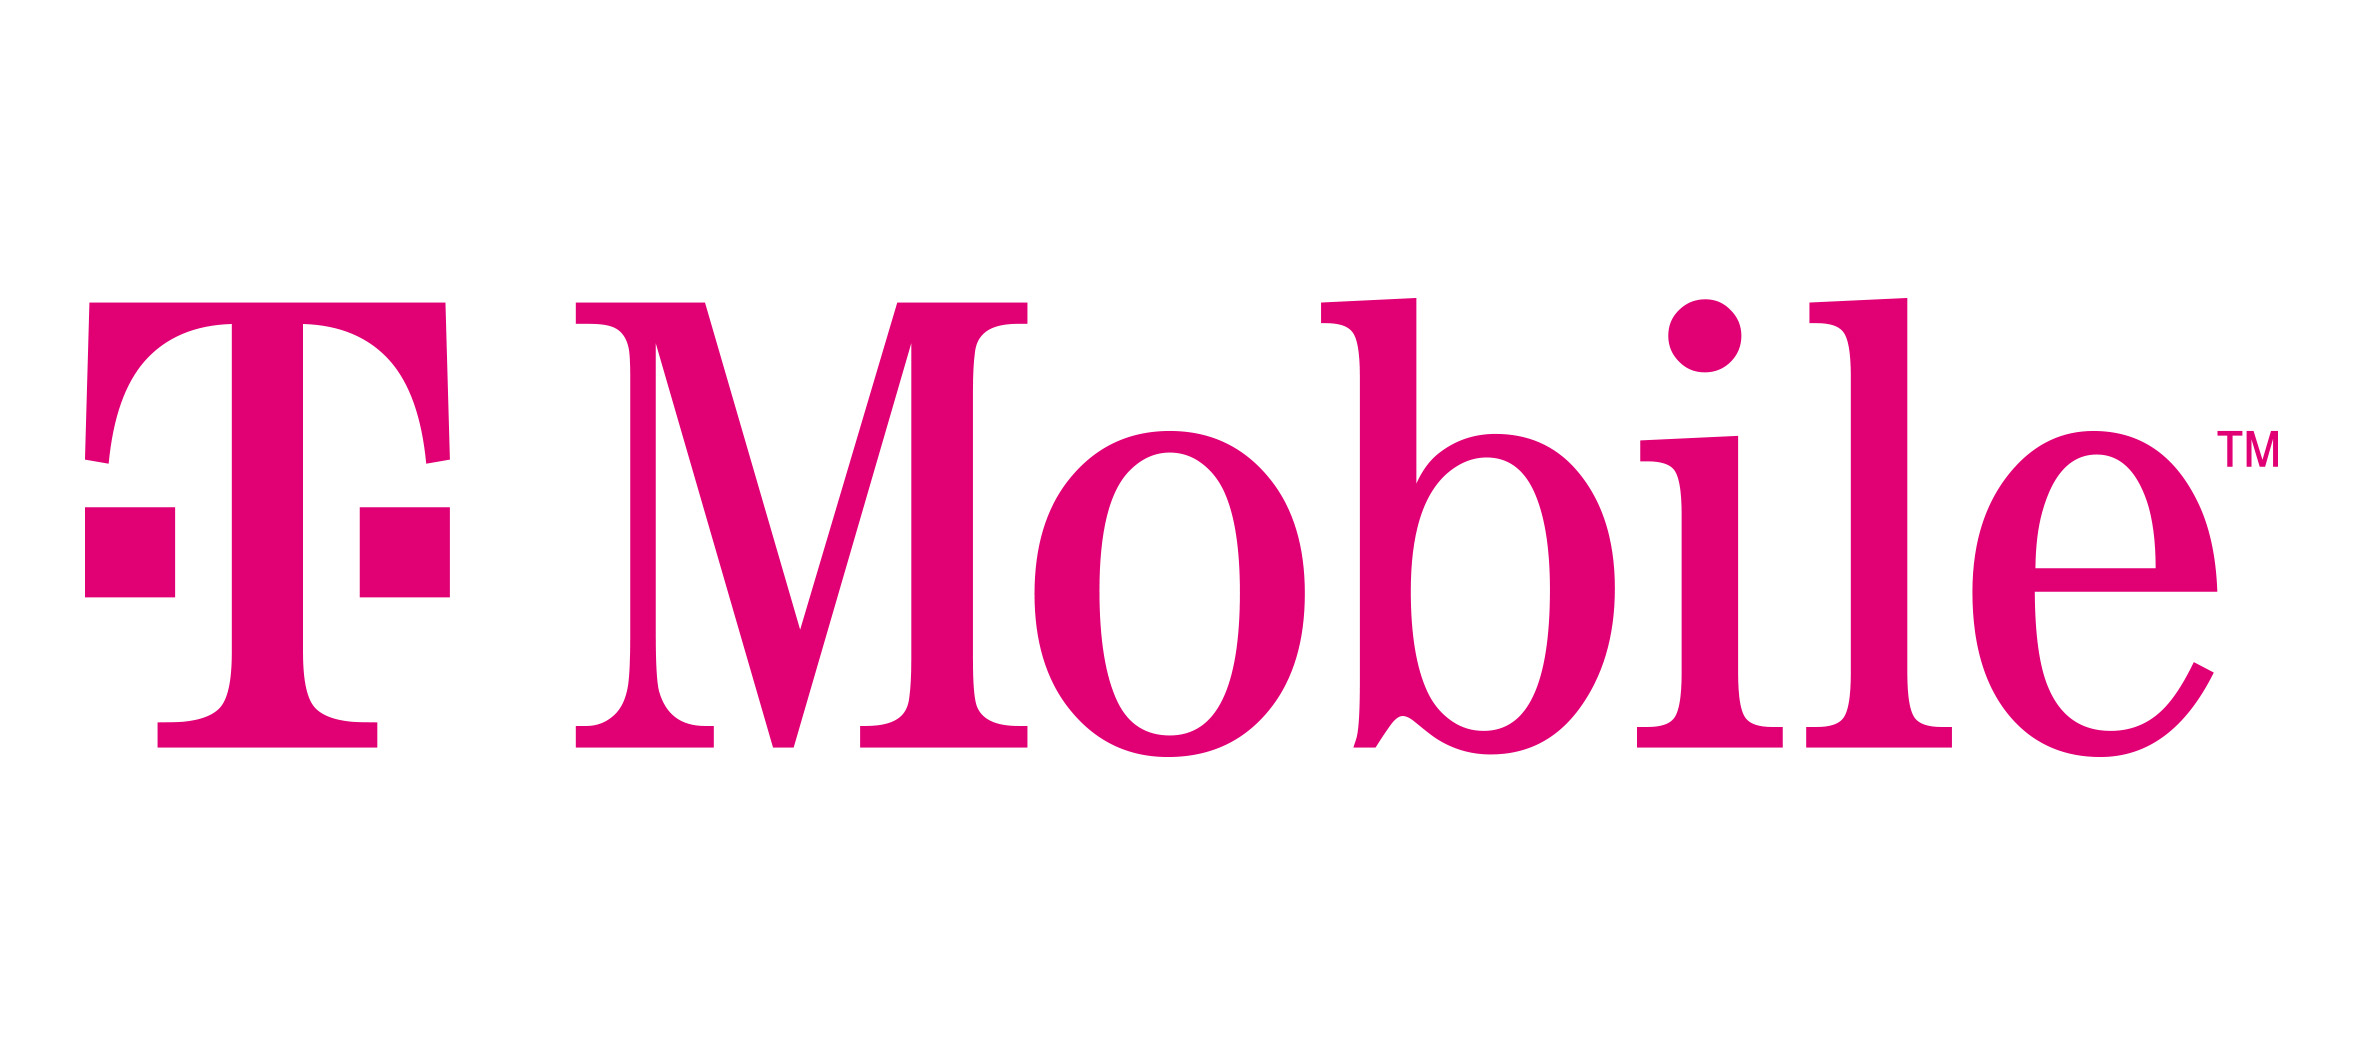 T-Mobile Offers Social On-Demand Capabilities With New Channel Program